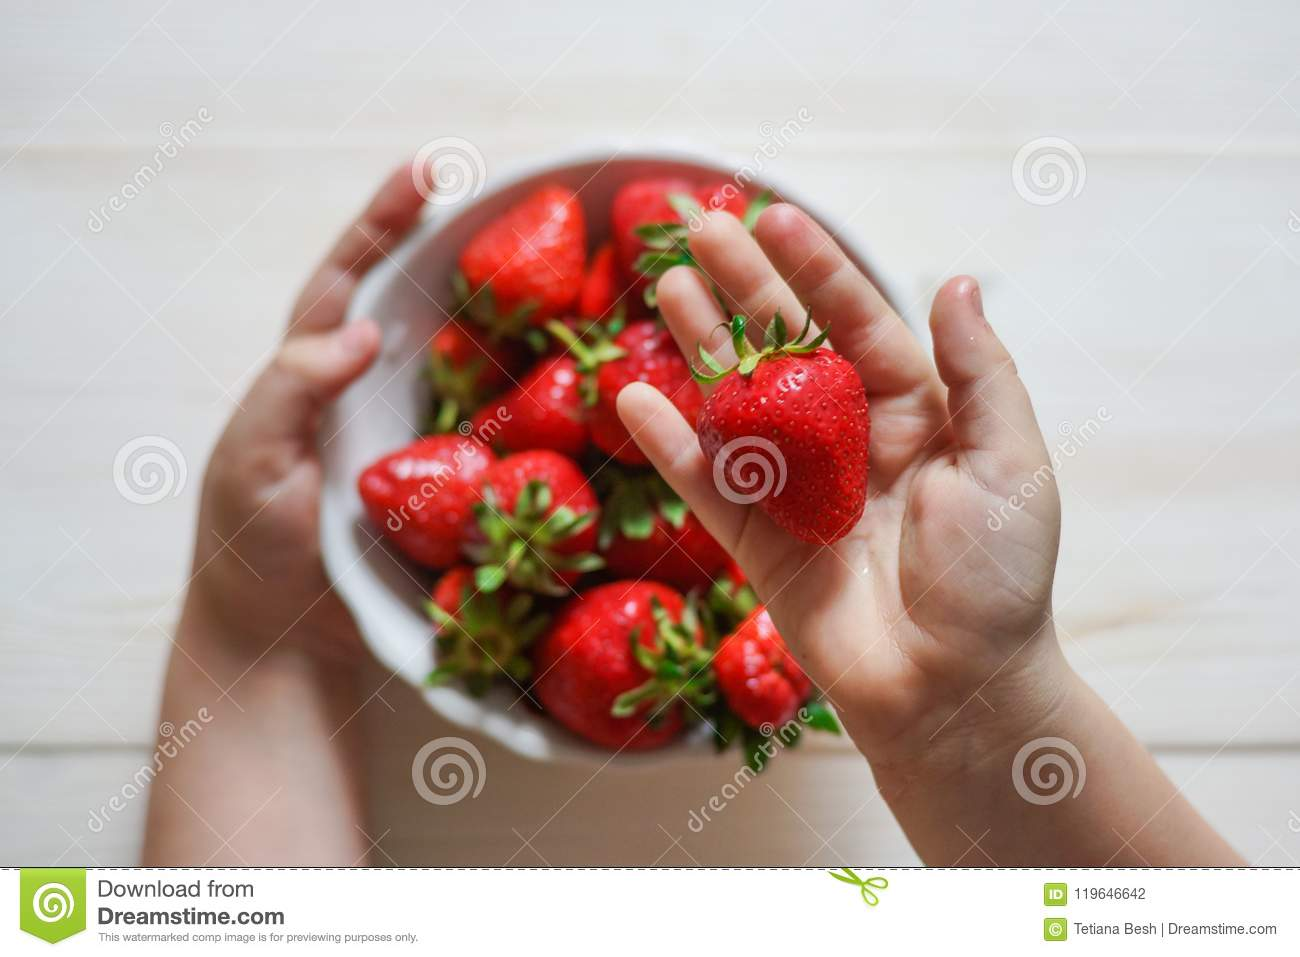 Child& x27;s hand holding strawberry on rustic concrete background. Summer healthy eating concept. Top view